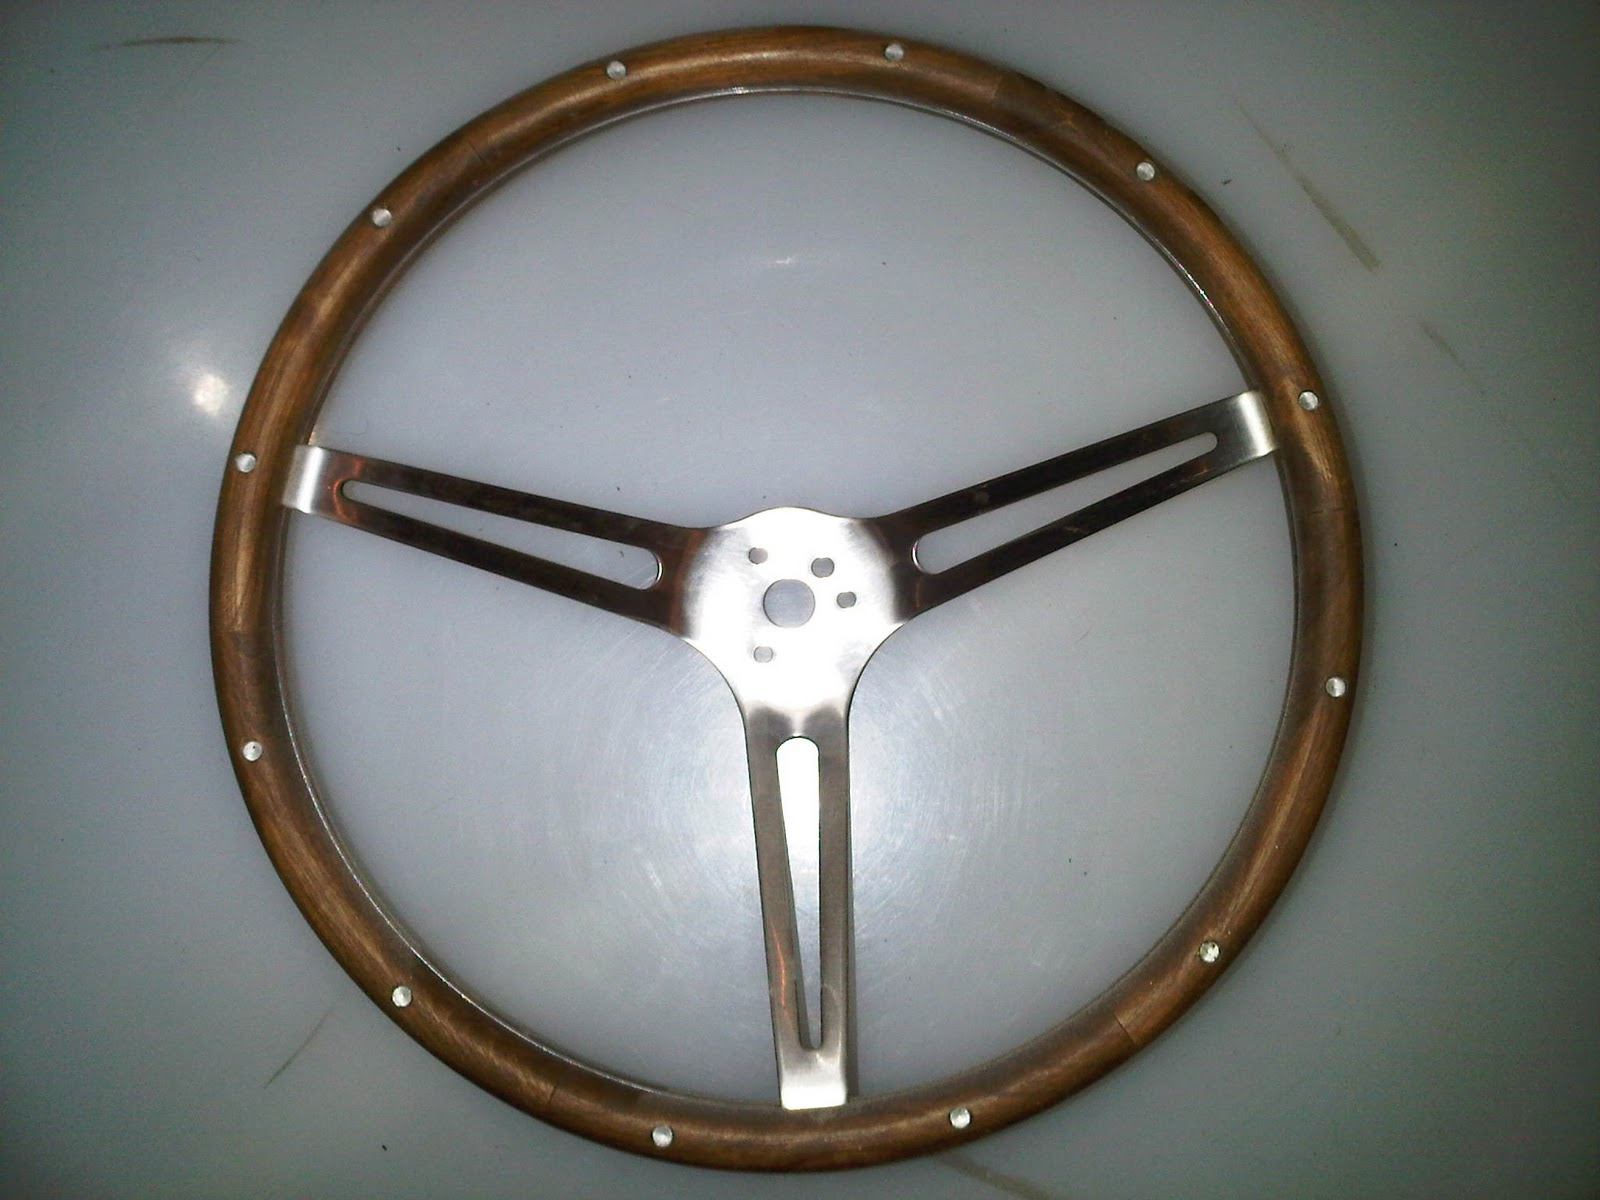 upku lowayu jaya for sale stir classic for muscle car or hot rod